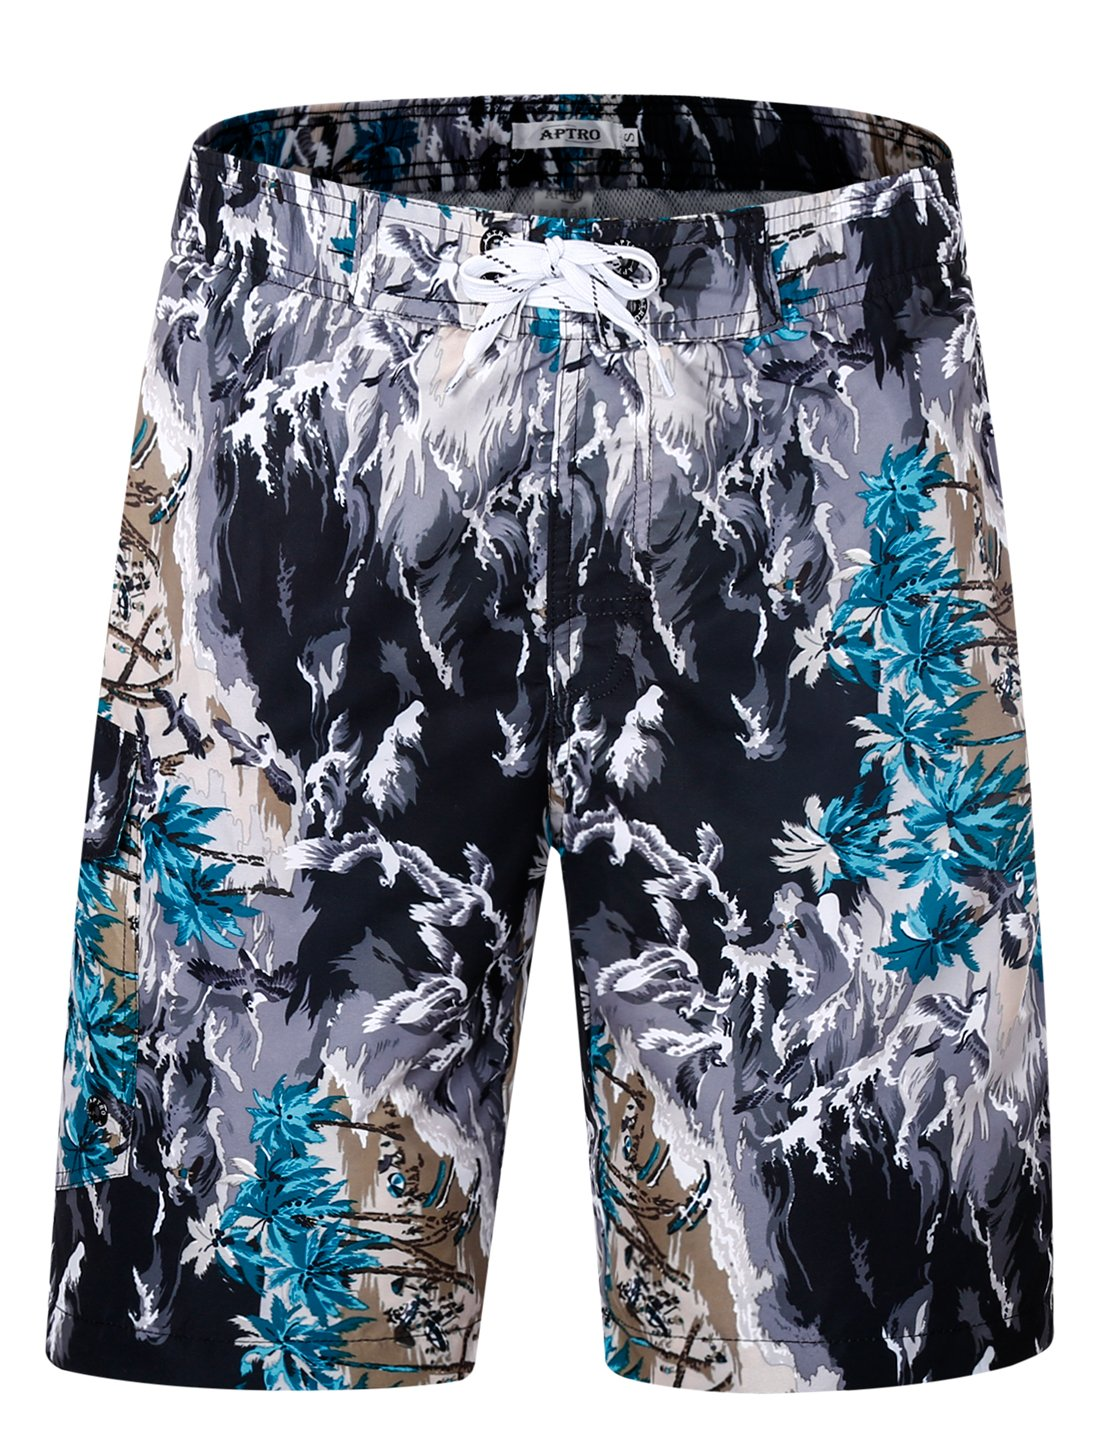 APTRO Men's Quick Dry Board Shorts Printed Palm Beach Swim Wear